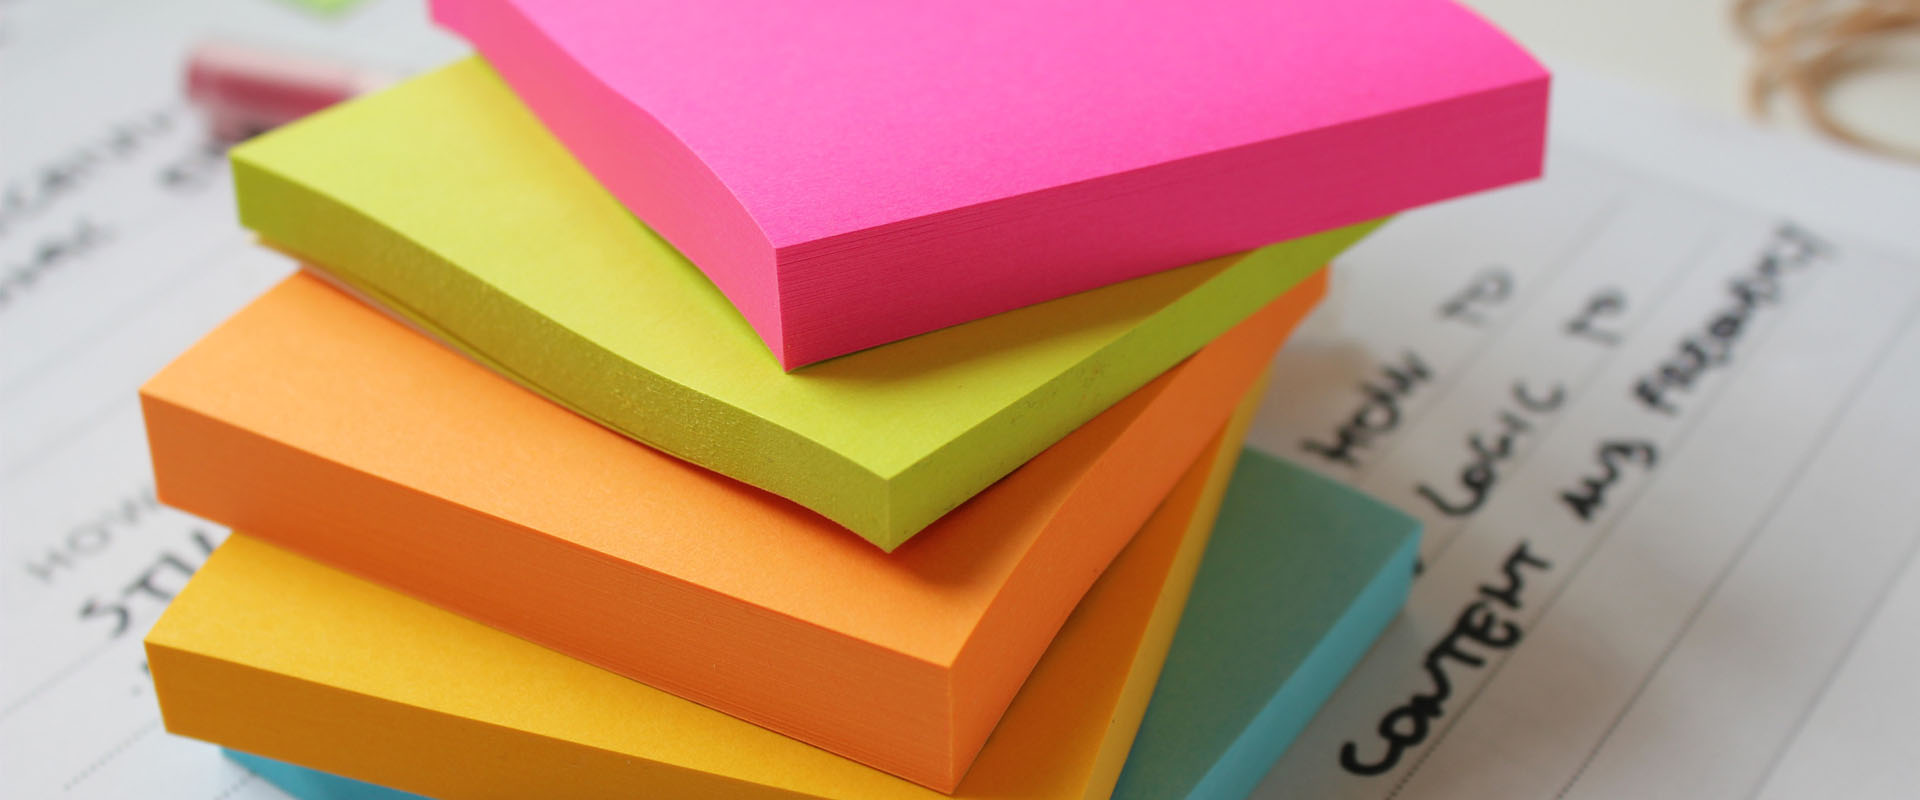 Stacked coloured notepads customer workshop preperation